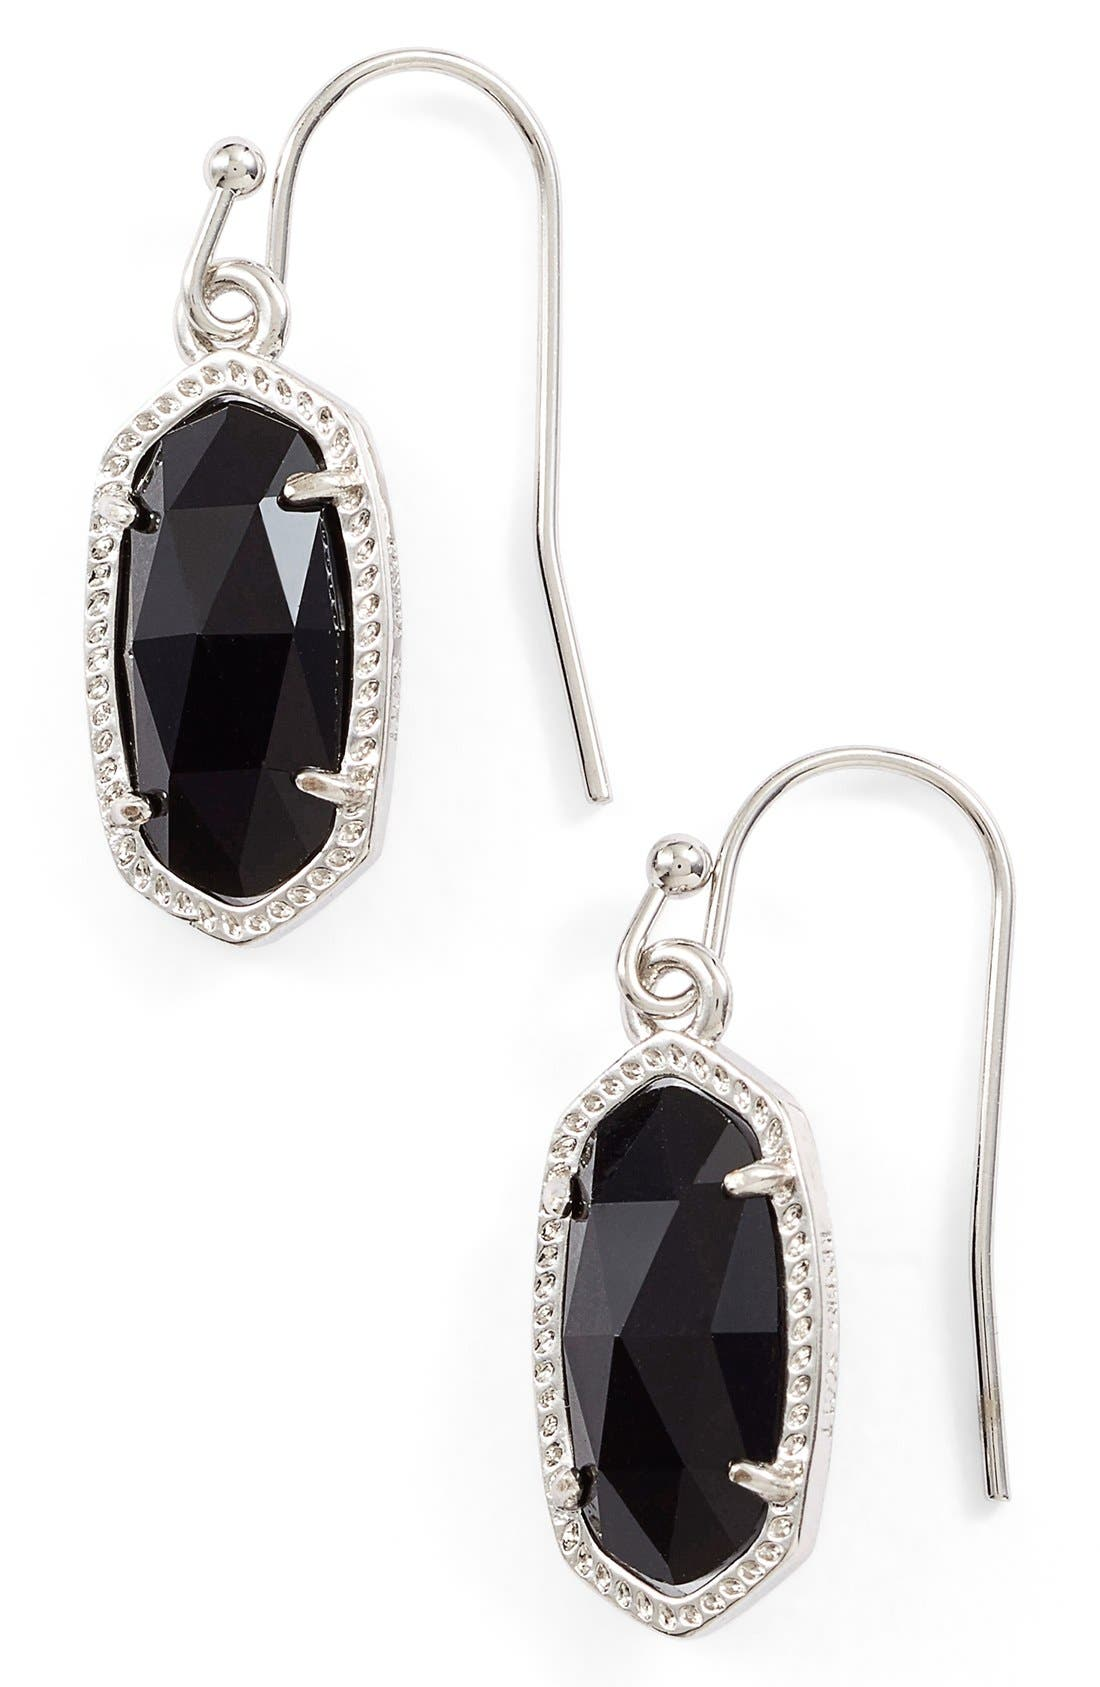 Lee Small Drop Earrings,                         Main,                         color, 001